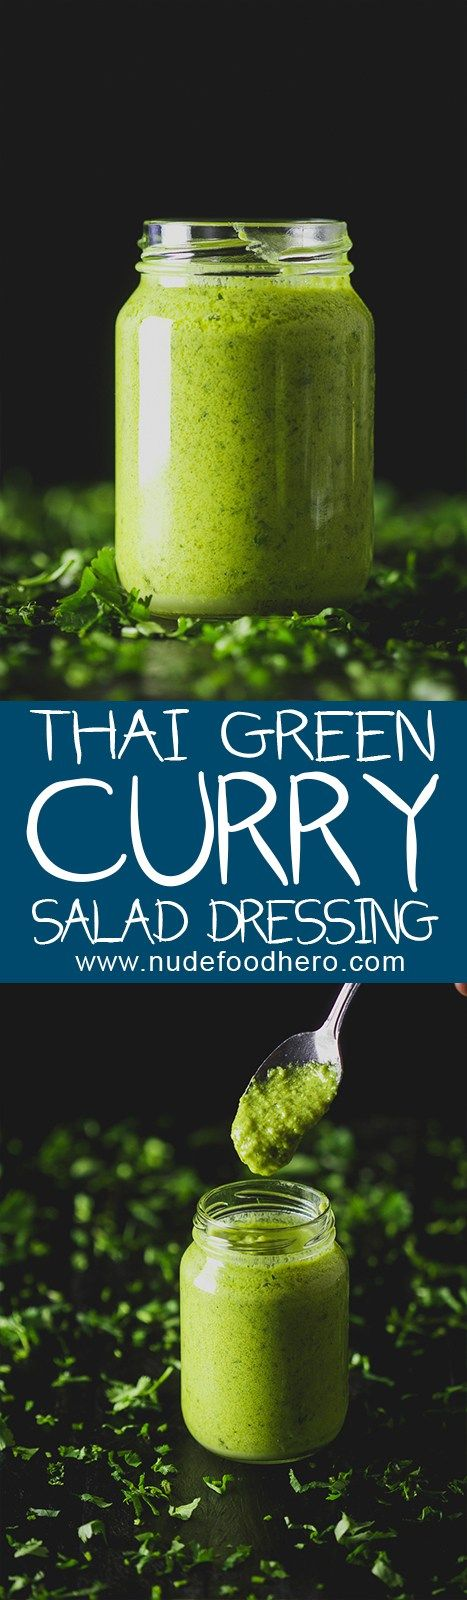 Spicy ∕∕ sweet ∕∕ creamy ∕∕ and utterly delicious, this Thai Green Curry Salad dressing will put all other salad dressings to utter shame!